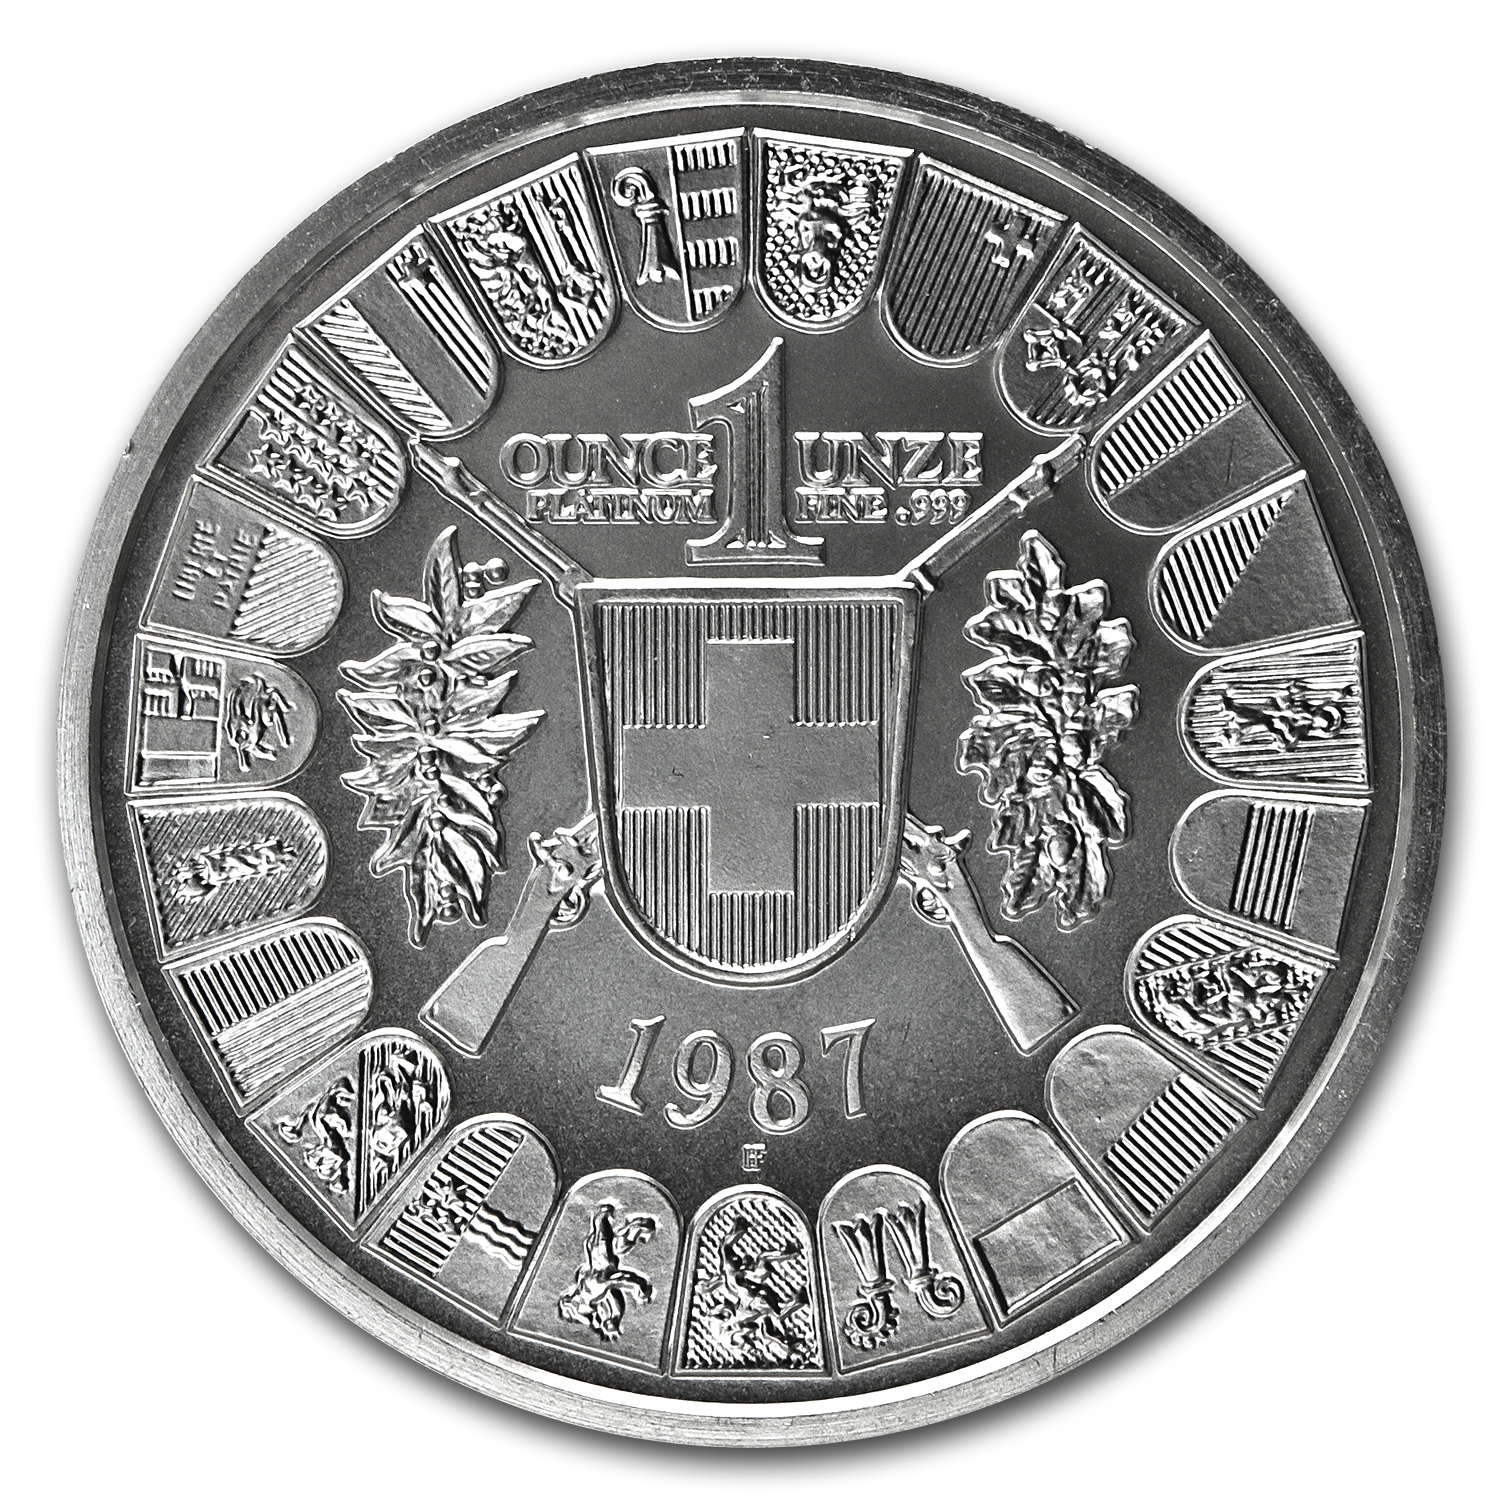 1987 1 oz Swiss Platinum Shooting Thaler Proof